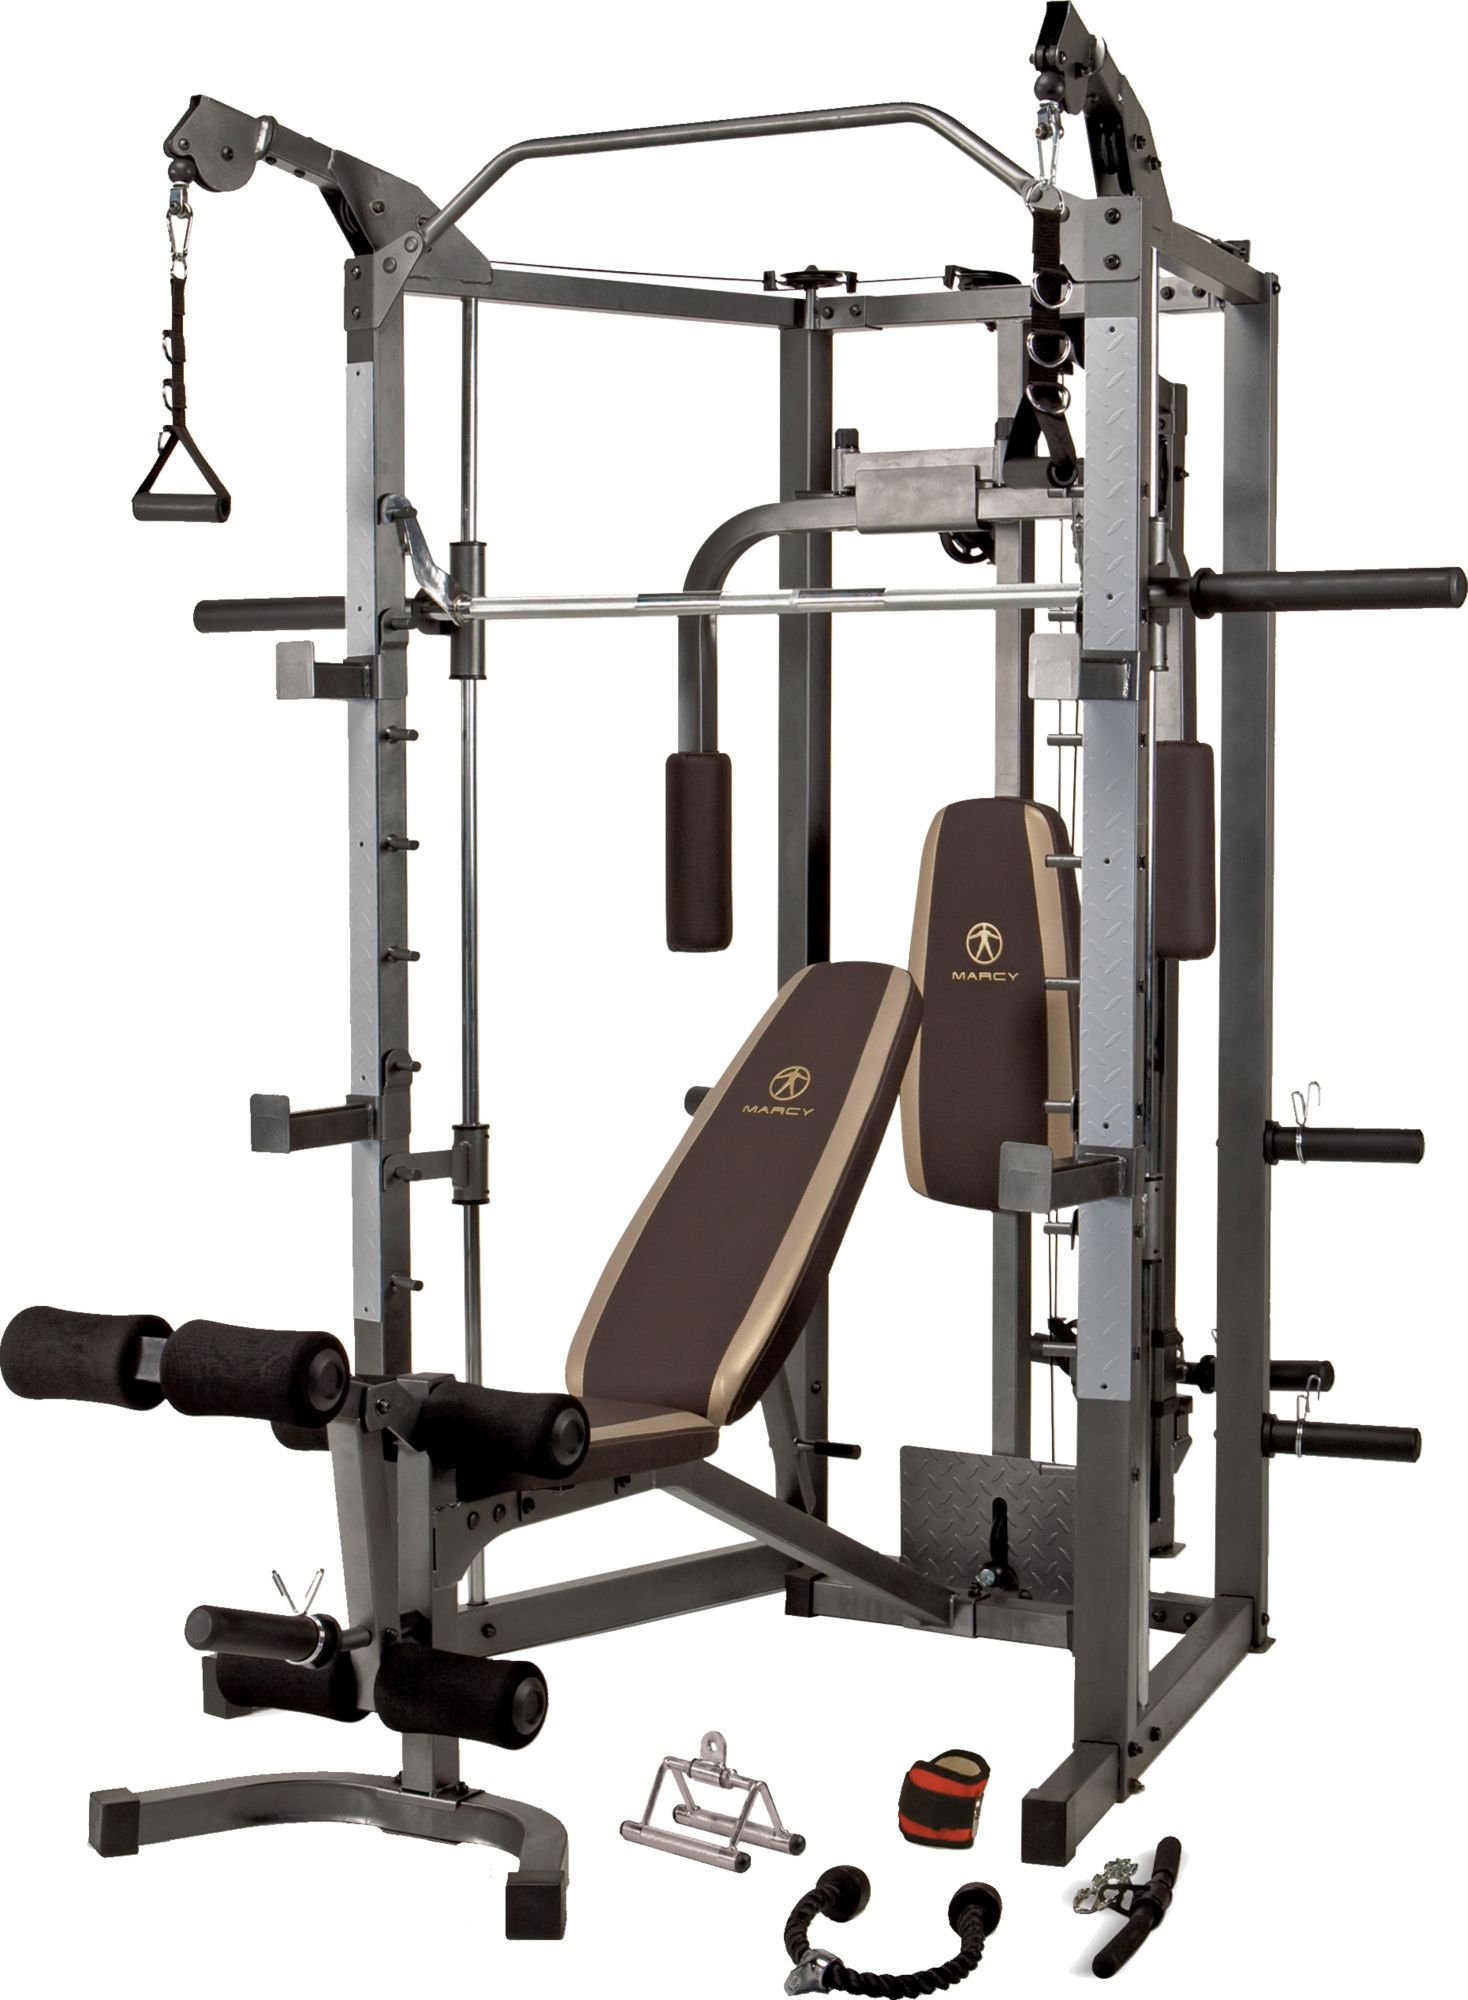 Marcy Combo Smith Machine At Home Gym Home Gym Machine Home Gym Set